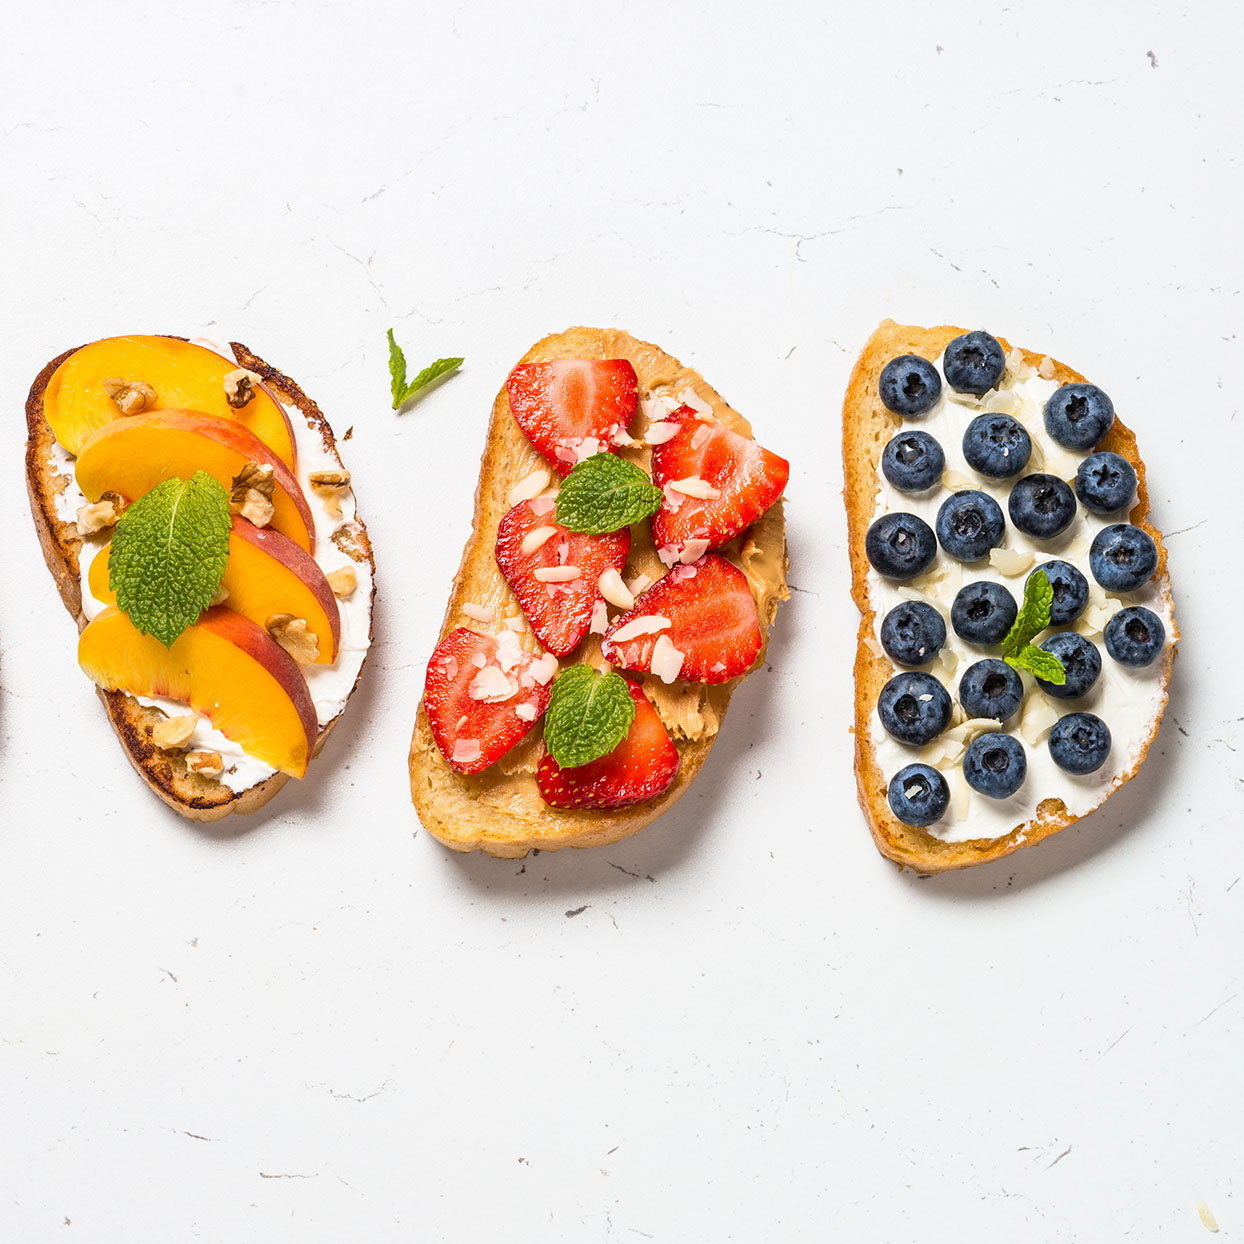 various toast recipes for healthy breakfast foods.